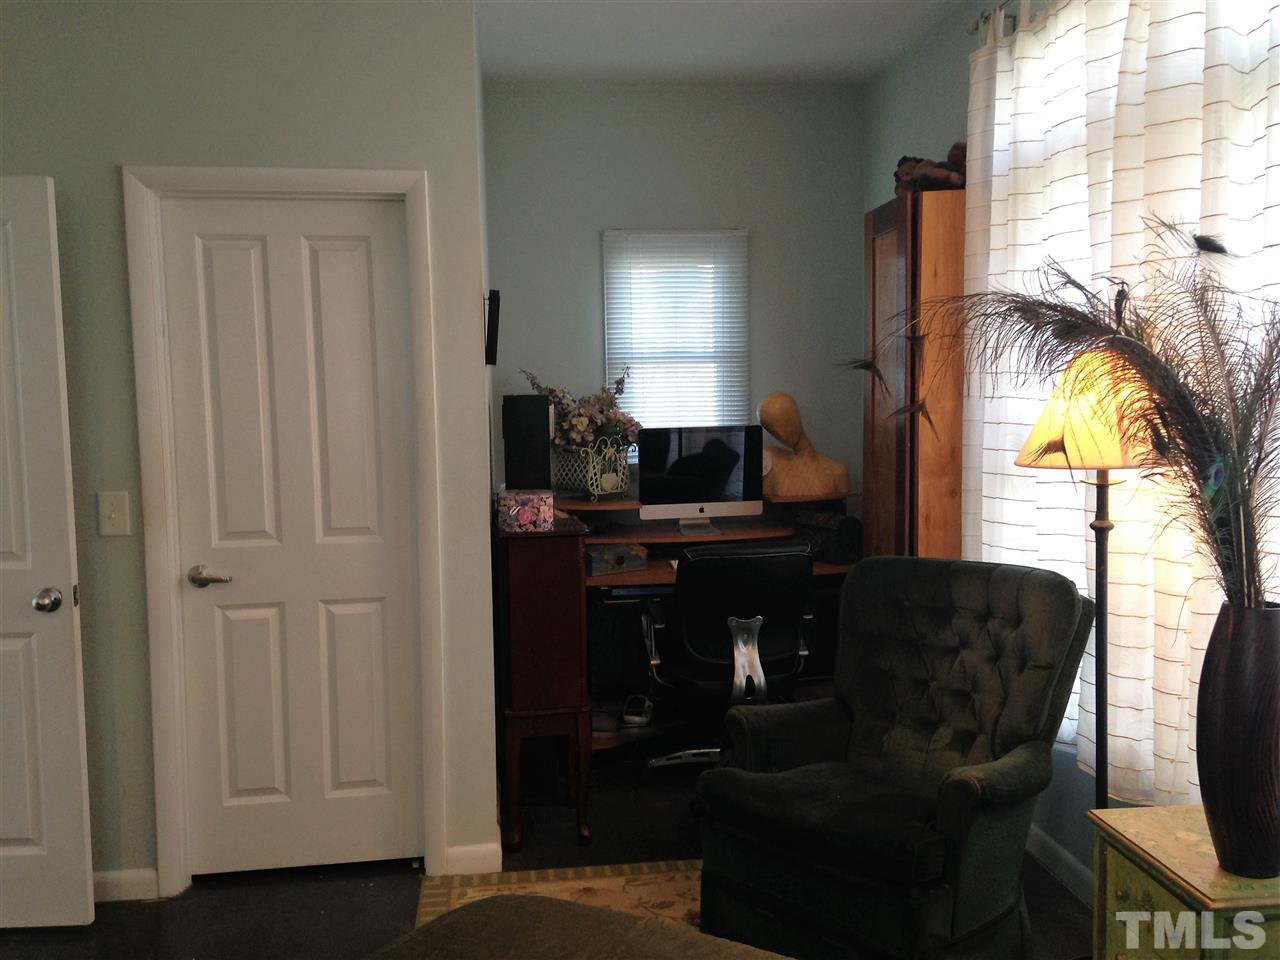 The downstairs bedroom has a recessed area that is perfect for a home office area.